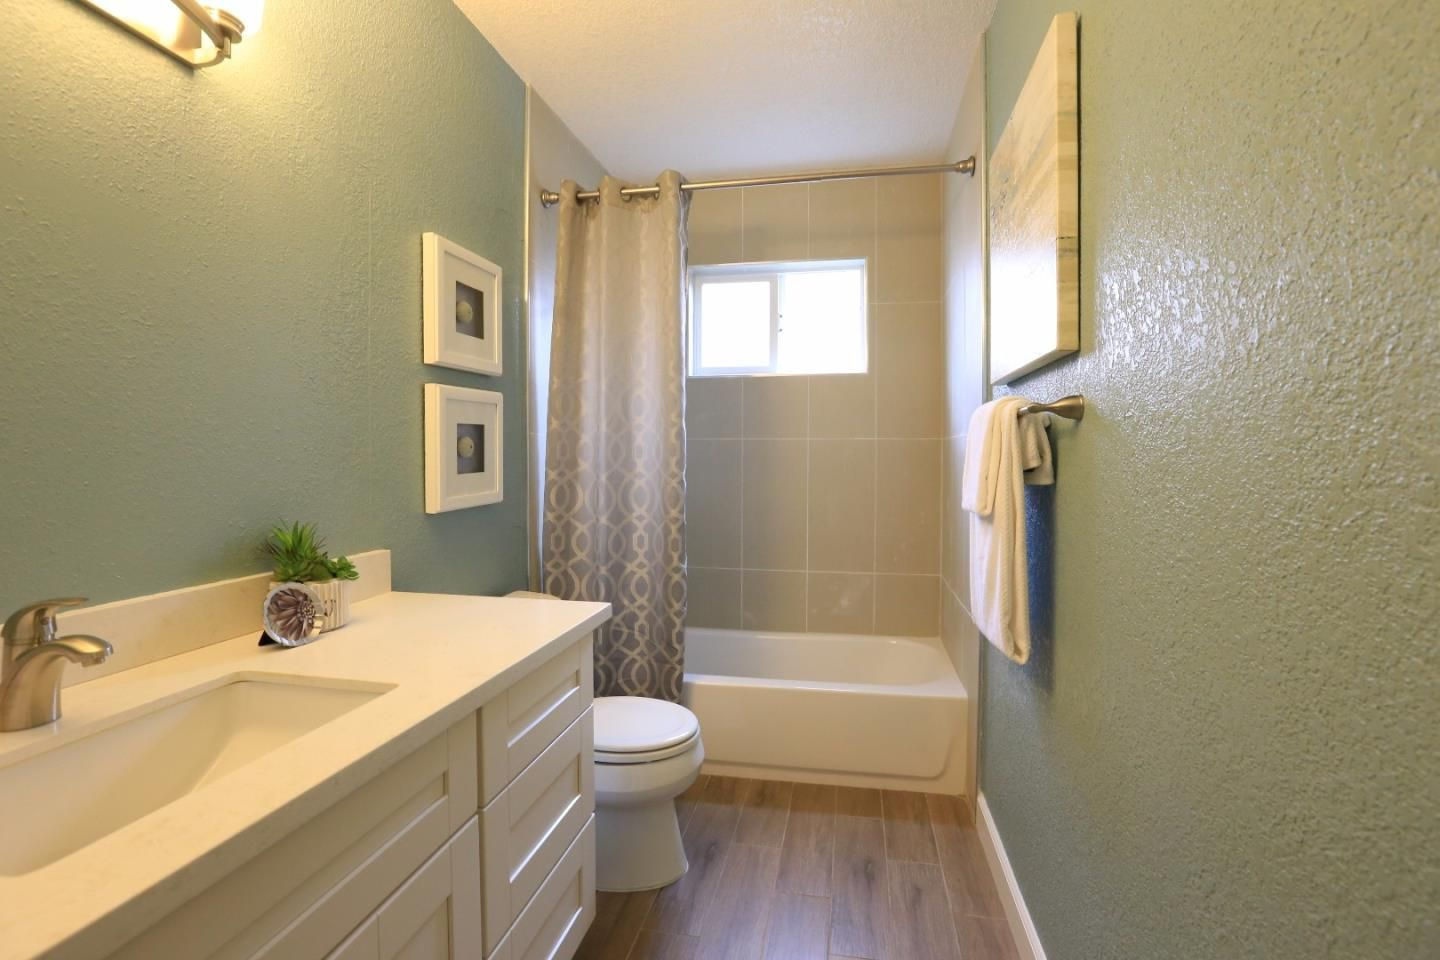 Vanity And Sink Possibly Wall Colors  Bathroom Remodel Captivating Bathroom Remodel San Jose Inspiration